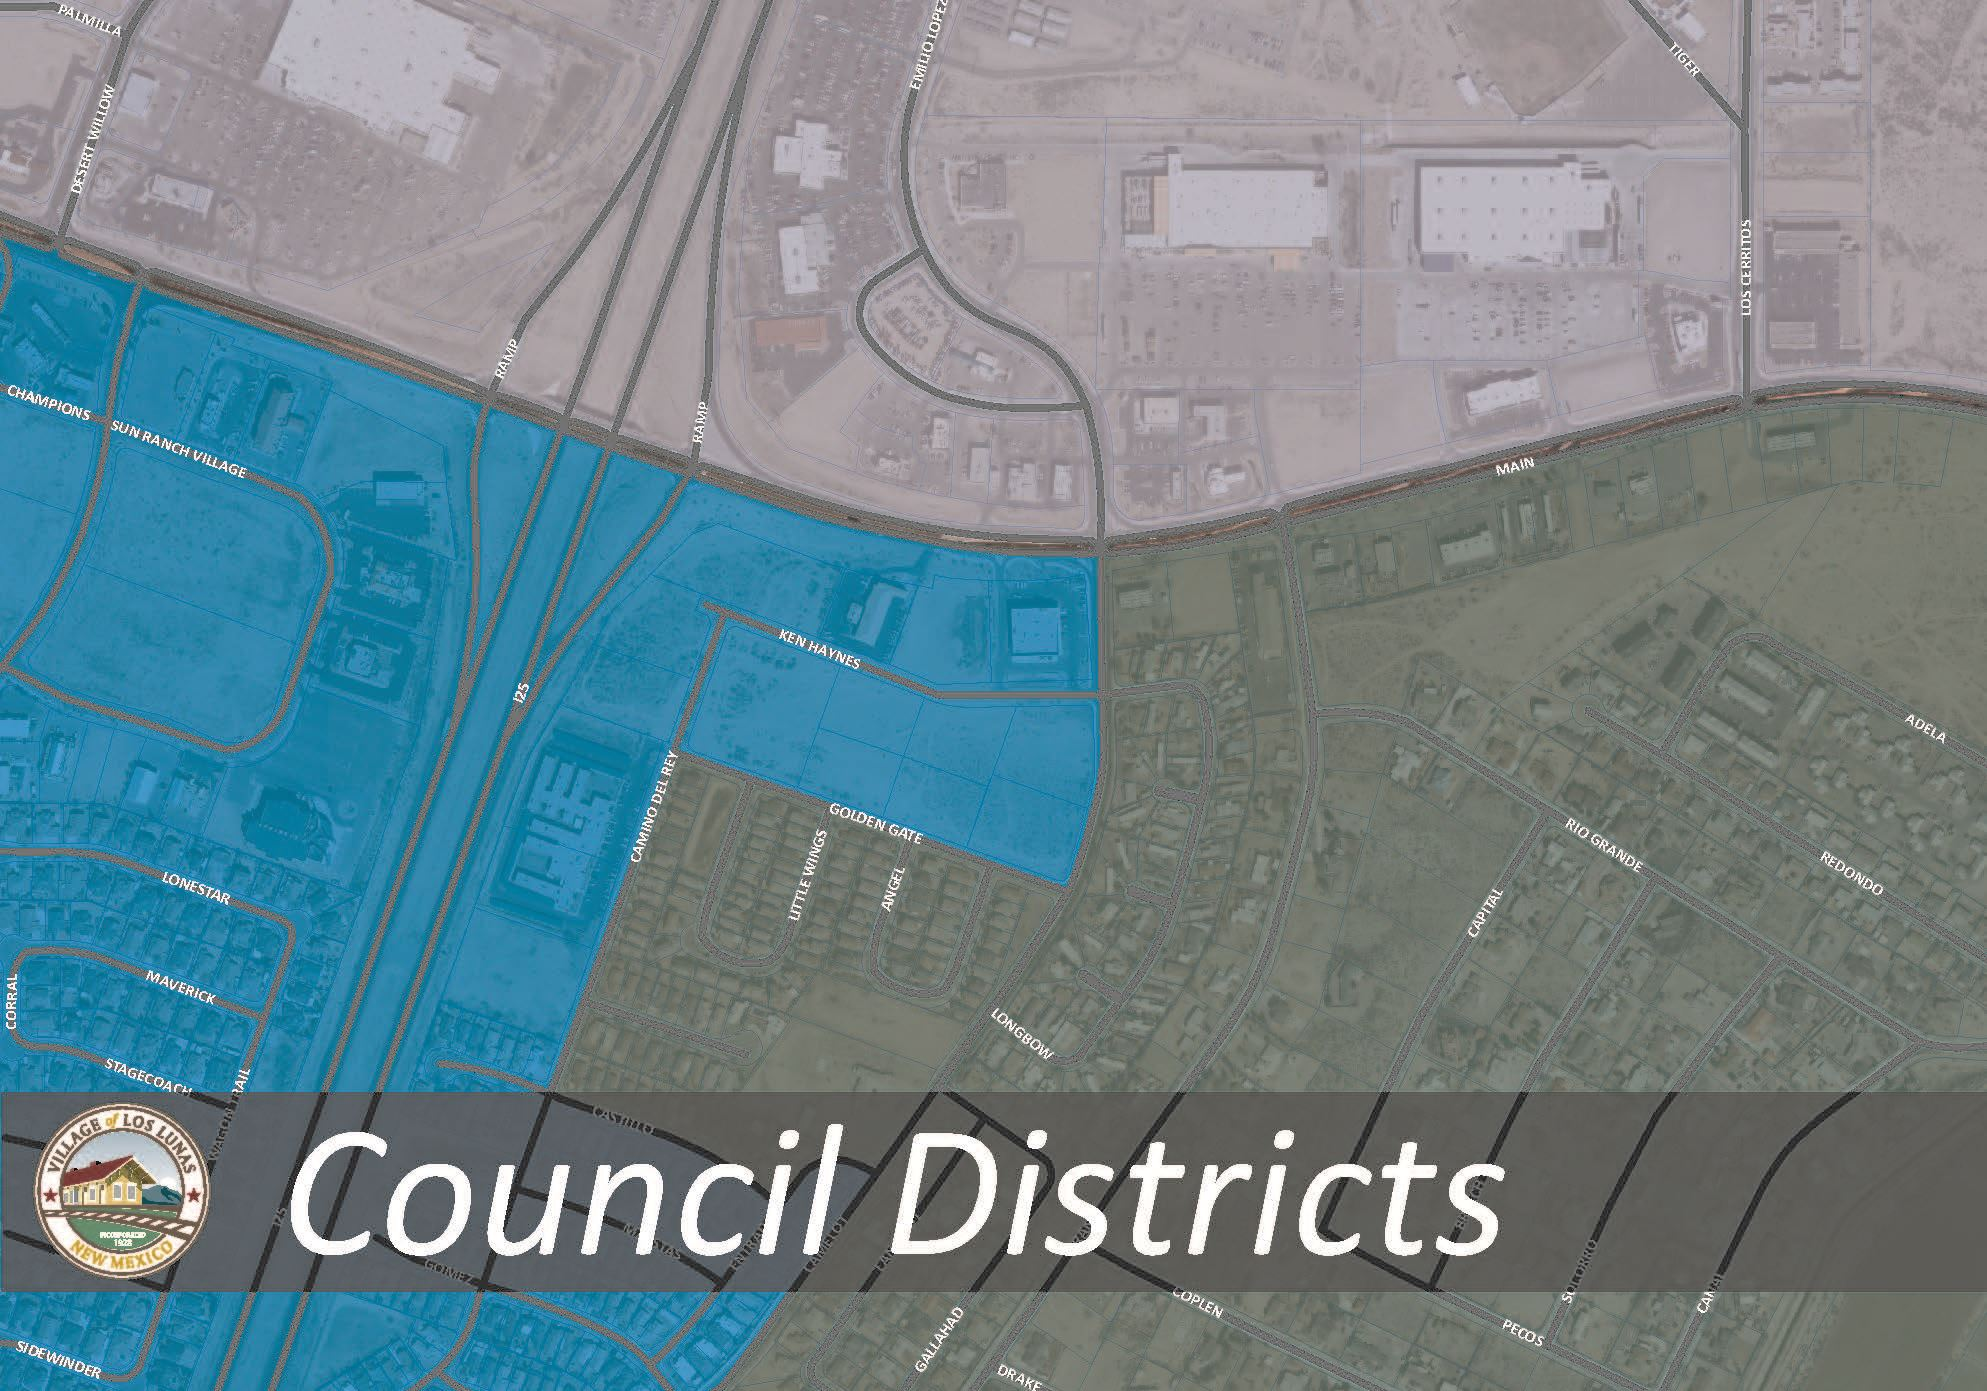 Council Districts Updated